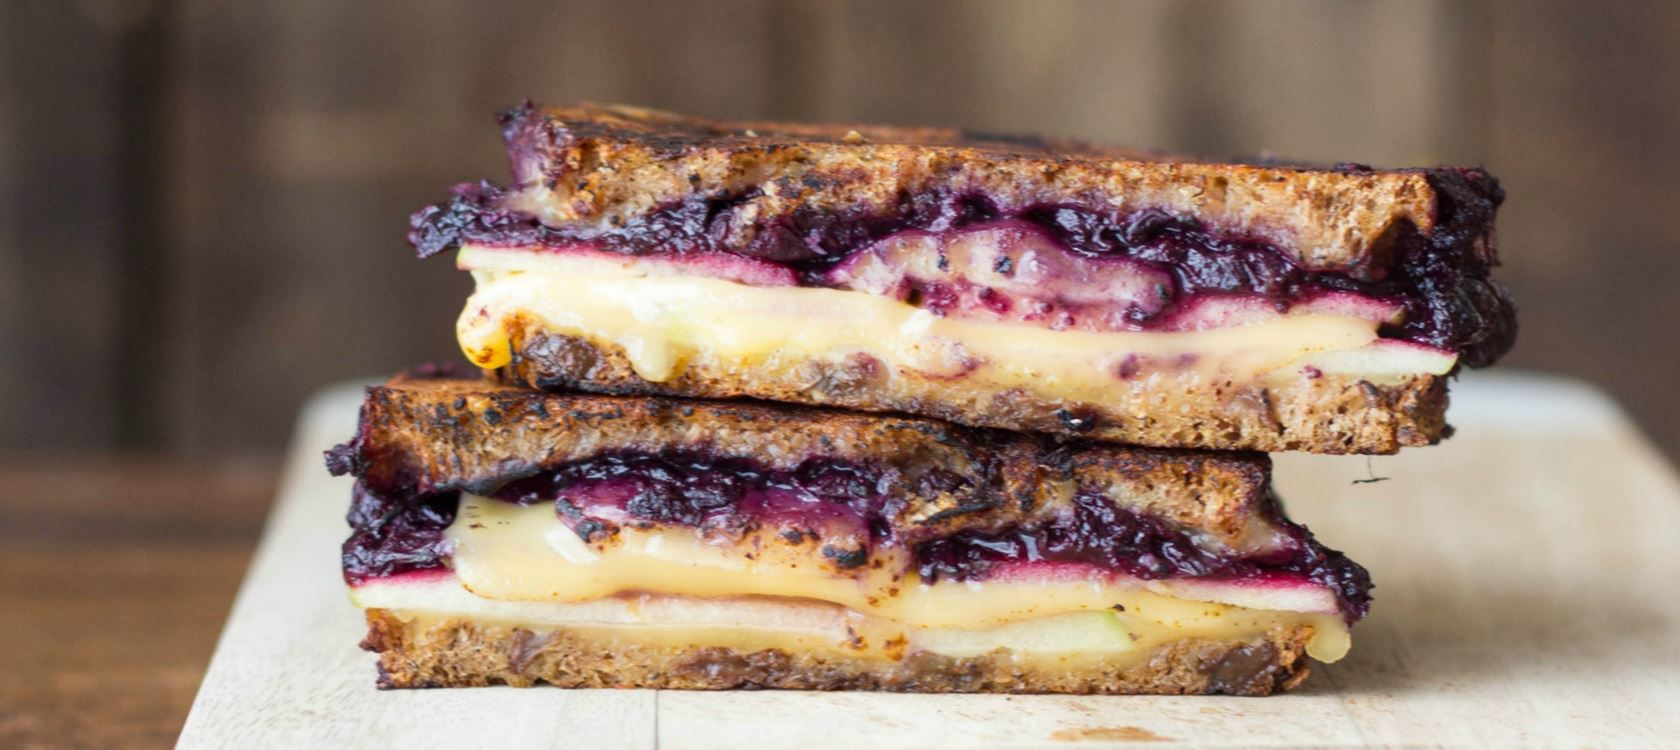 Blueberry, Apple & Balsamic Grilled Gouda